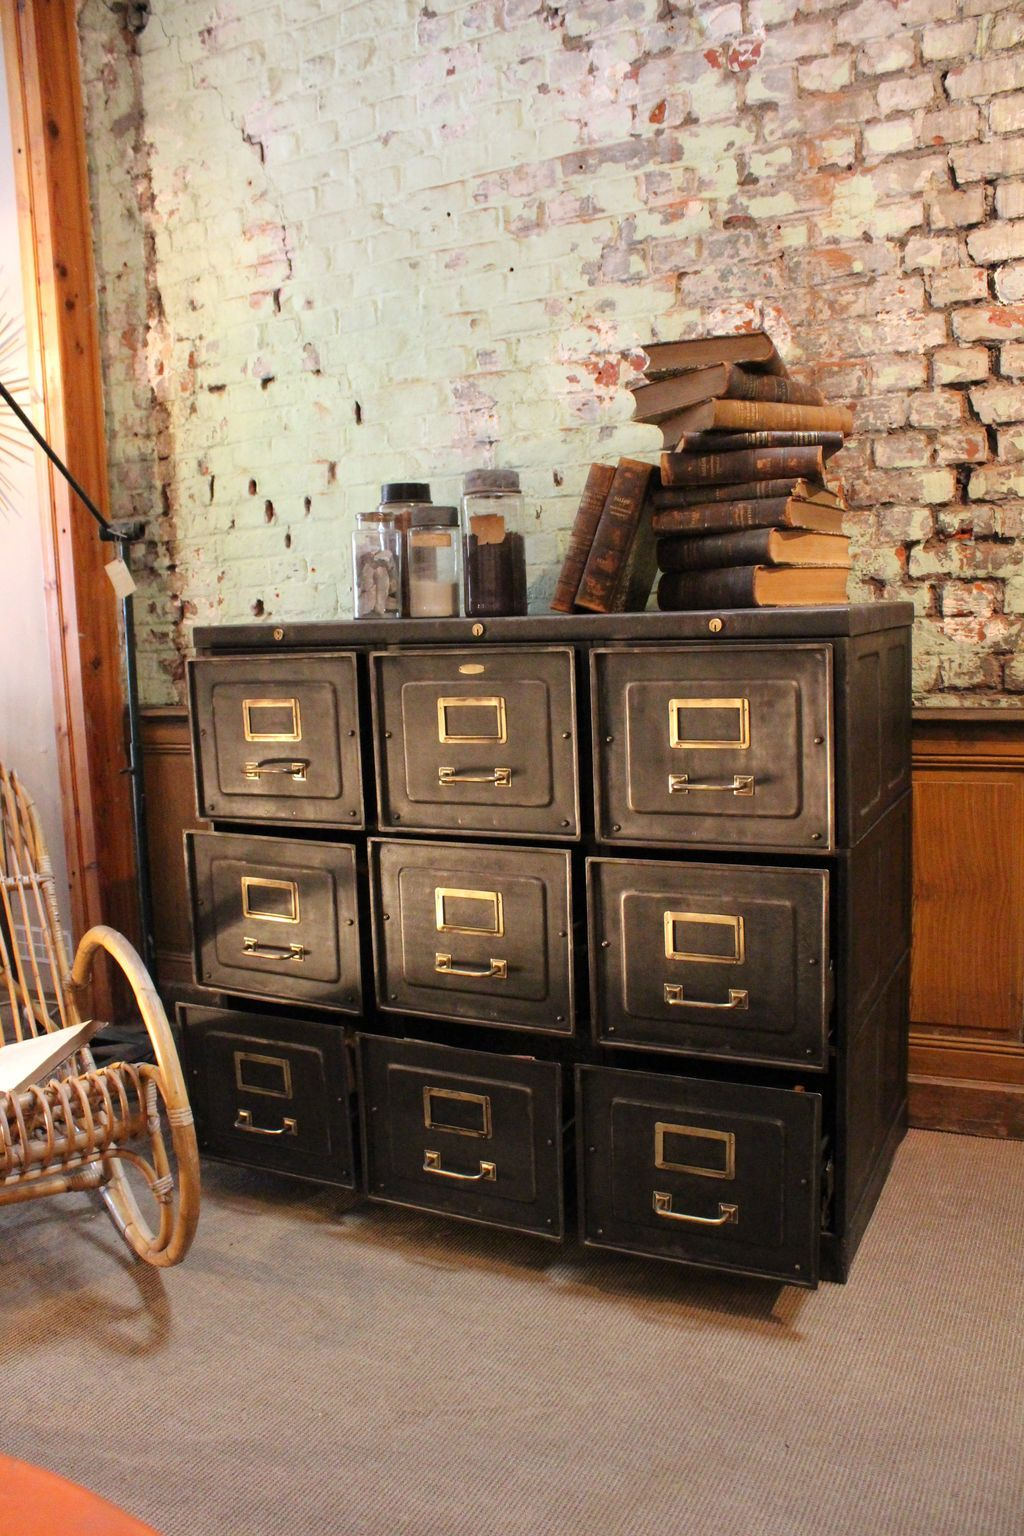 mobilier industriel strafor console 9 drawers meuble on fantastic repurposed furniture projects ideas in time for father s day id=84631